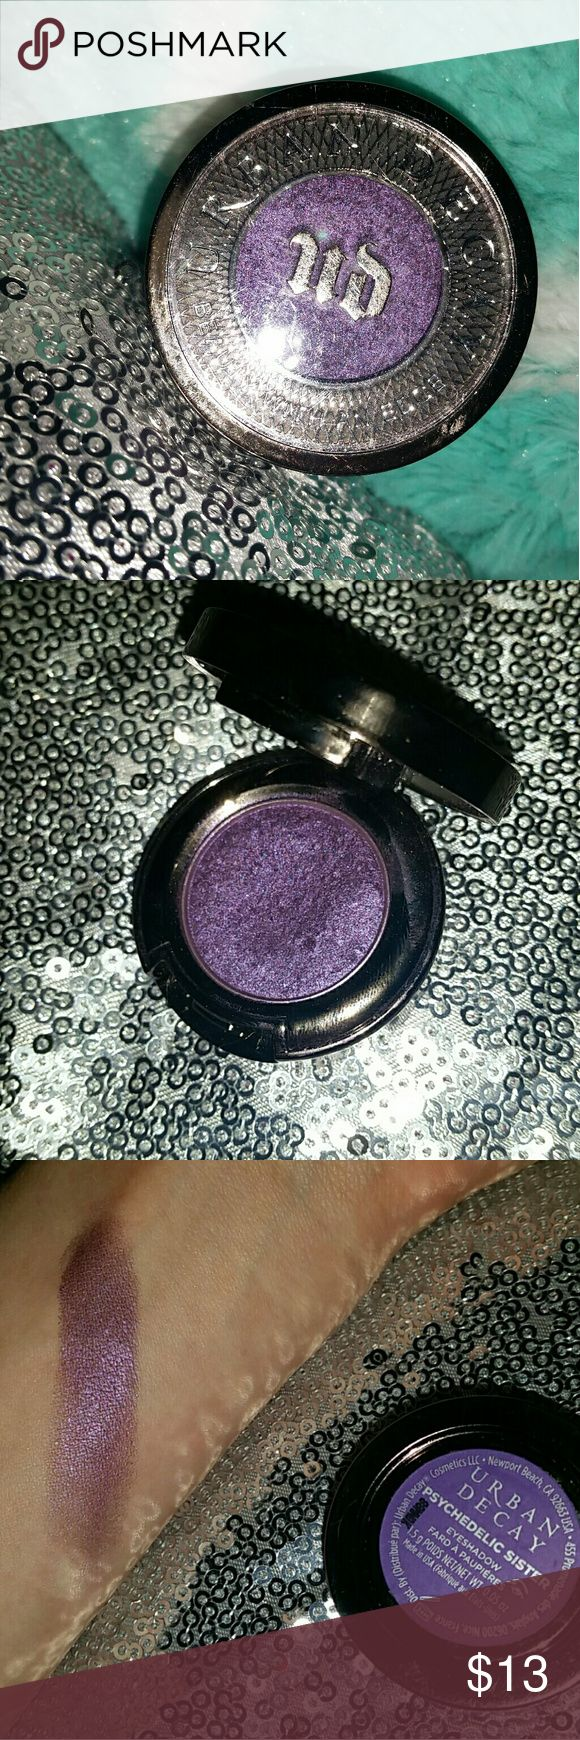 💎 Urban Decay • Psychedelic Sister 💎🌼 Single shadow. Used once for a concert but dont have the box. Shade is PSYCHEDELIC SISTER 💜💜 Urban Decay Makeup Eyeshadow